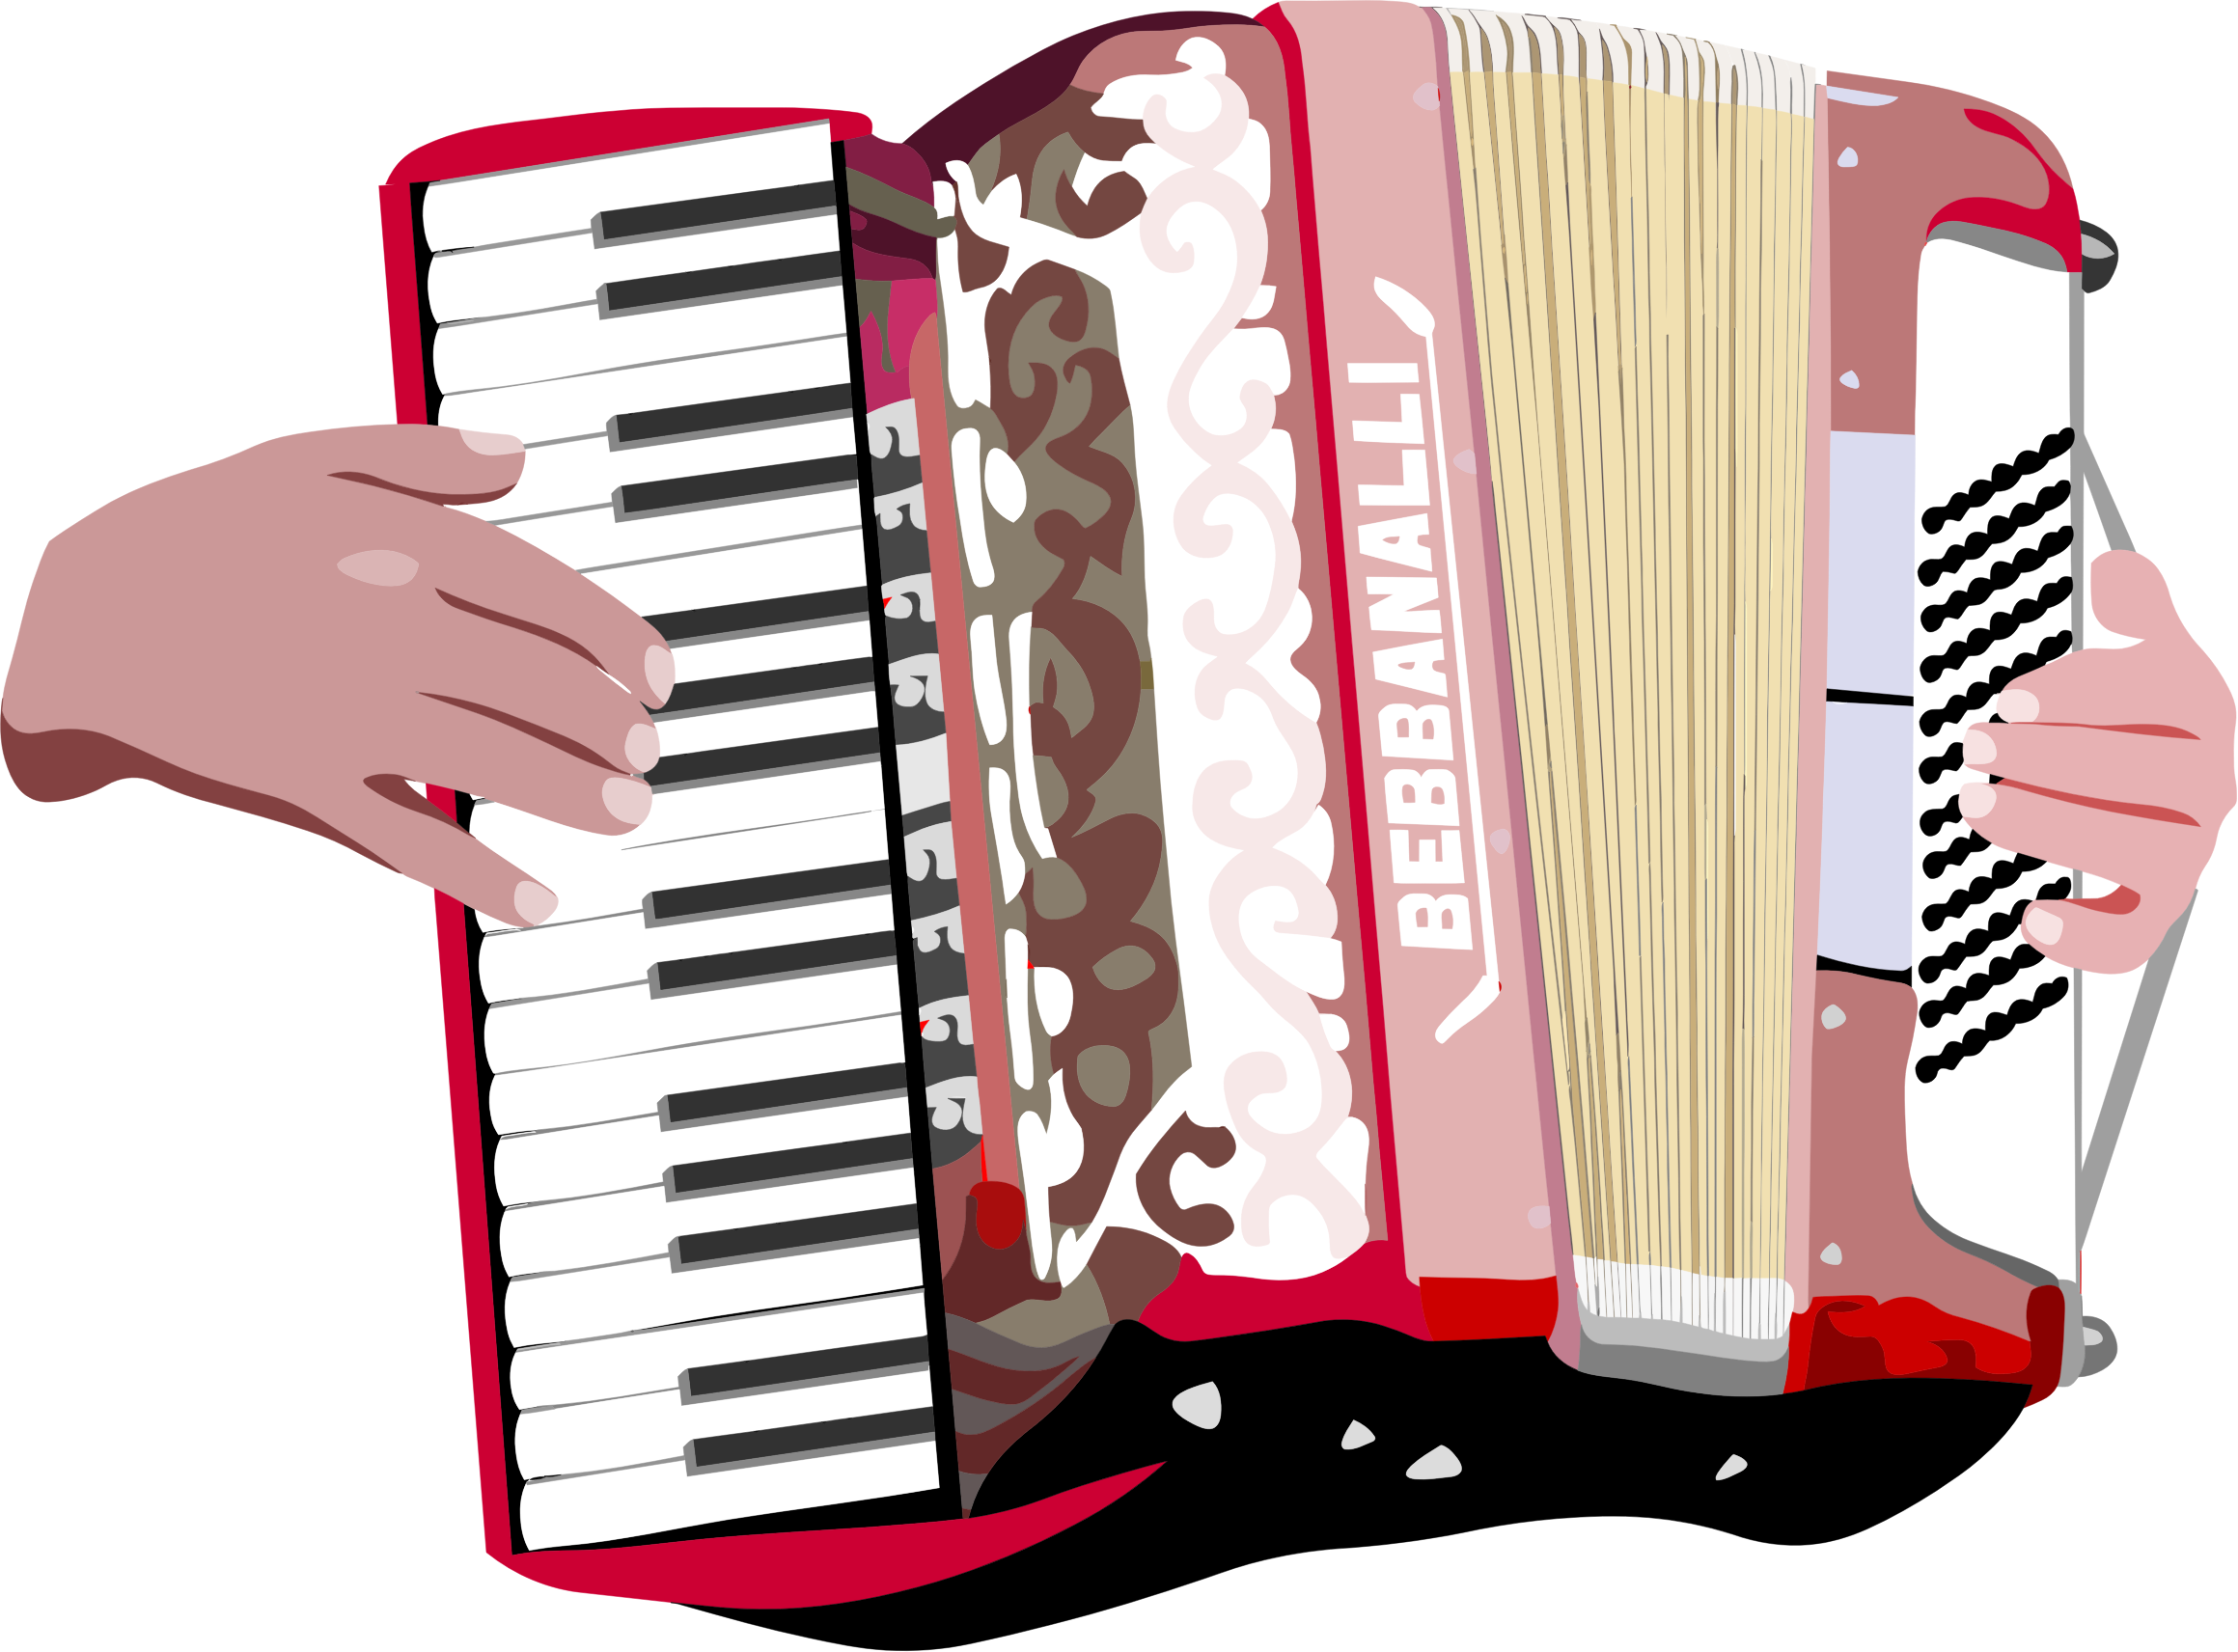 Accordion Player by GDJ